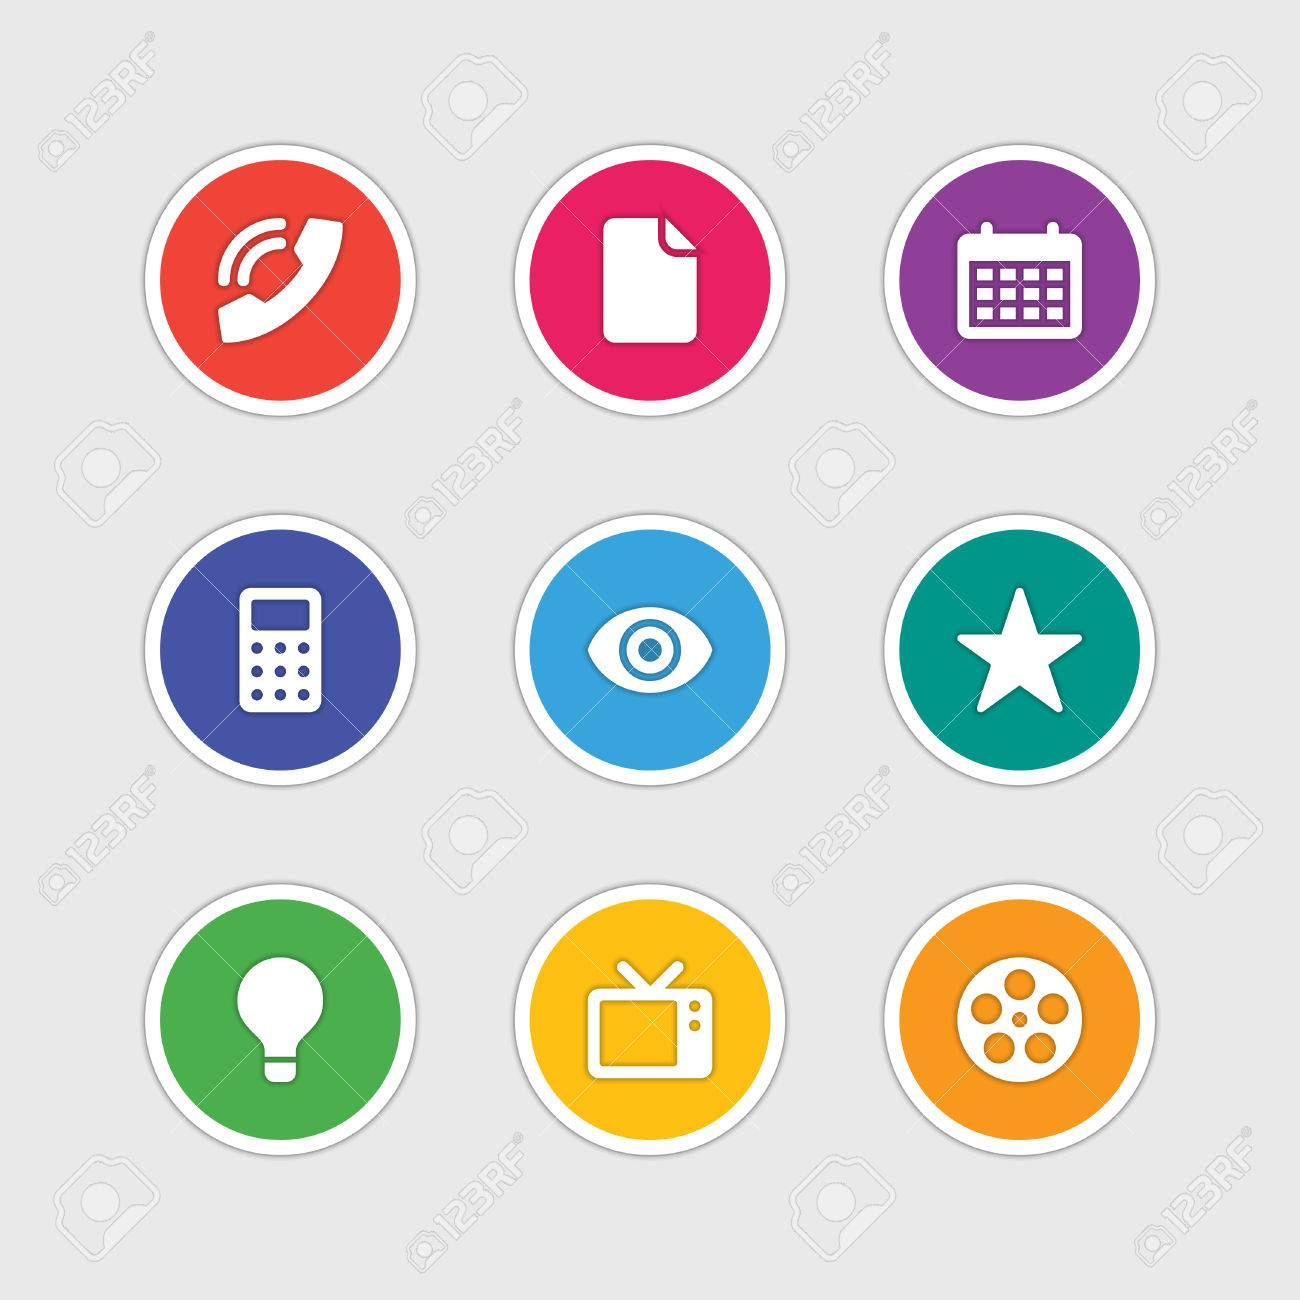 Material Design Style Icons Vector Sign And Symbols Document,.. throughout Material Design Calendar Icon